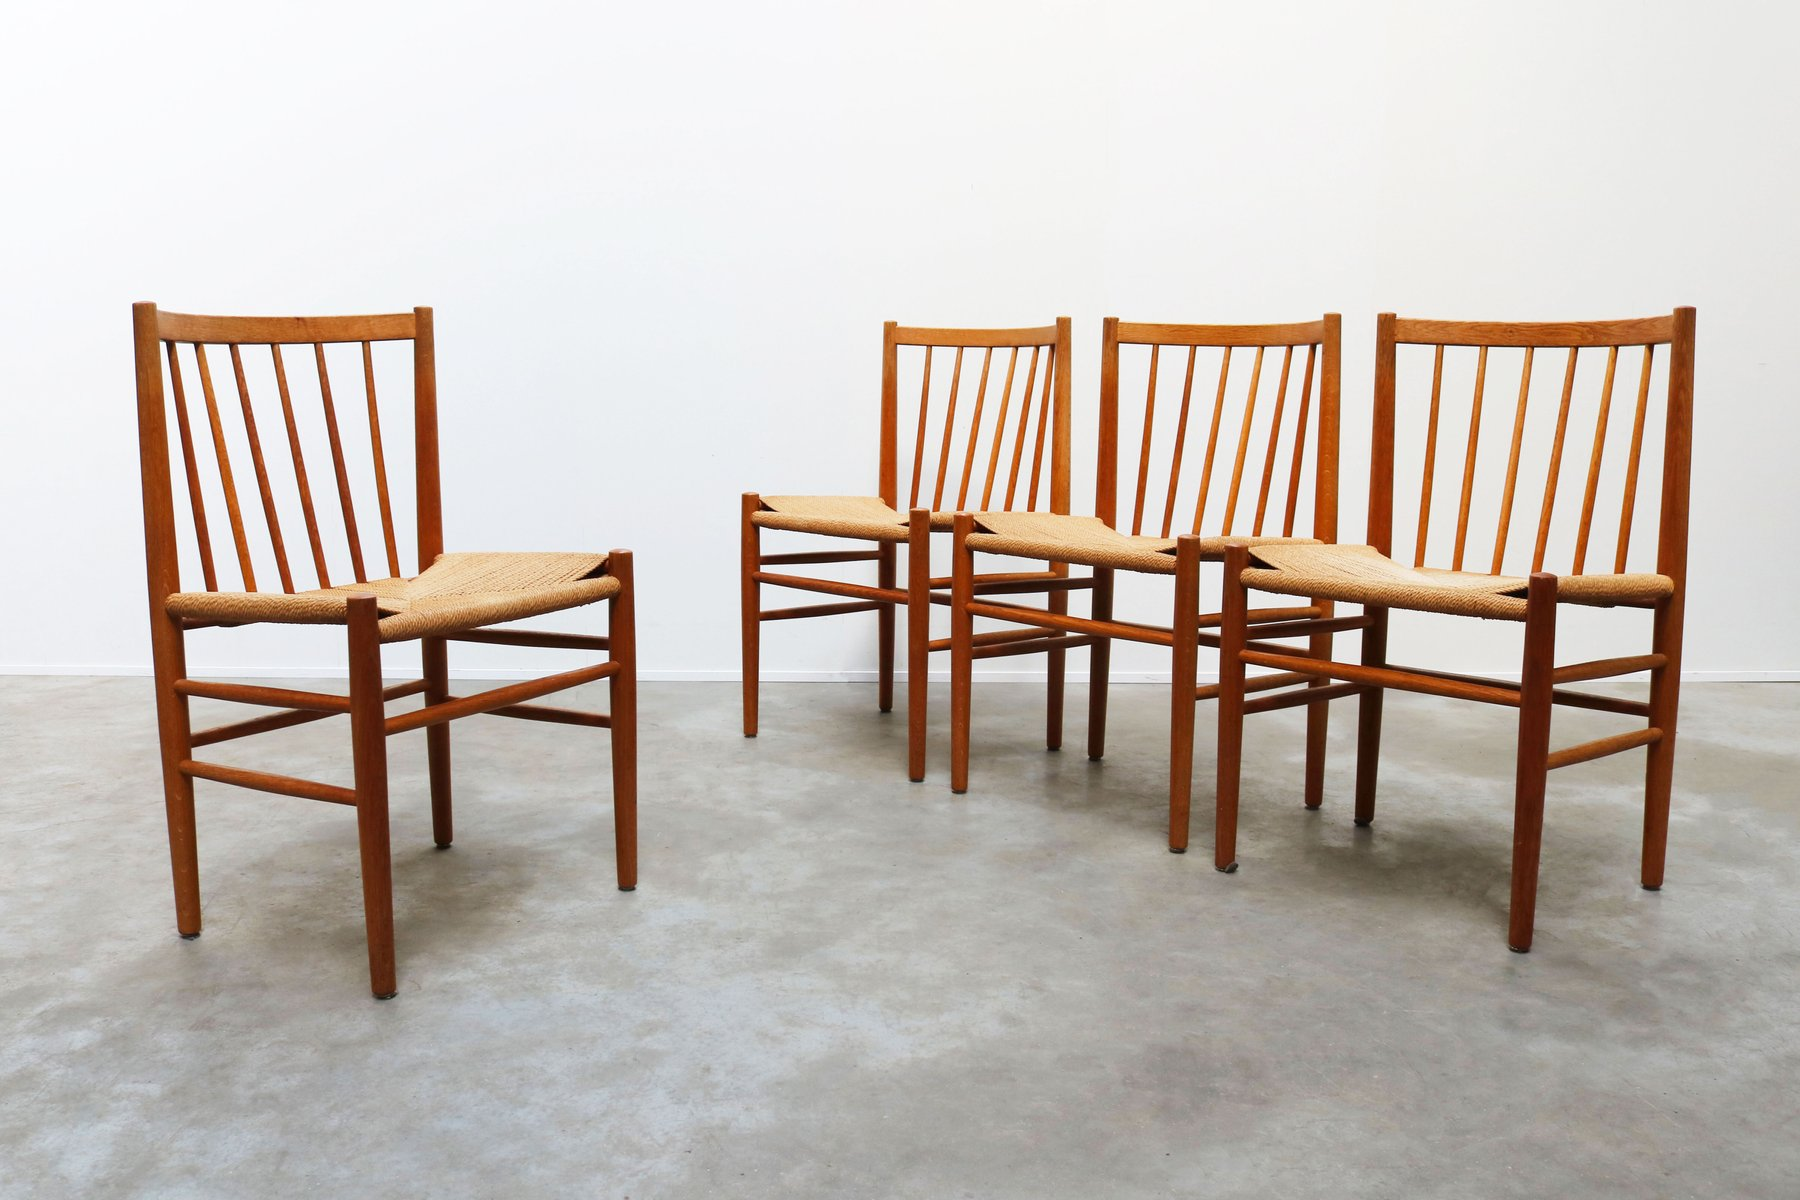 Model J80 Oak And Paper Cord Dining Chairs By Jørgen Bækmark For Fm Møbler 1950s Set Of 4 For Sale At Pamono